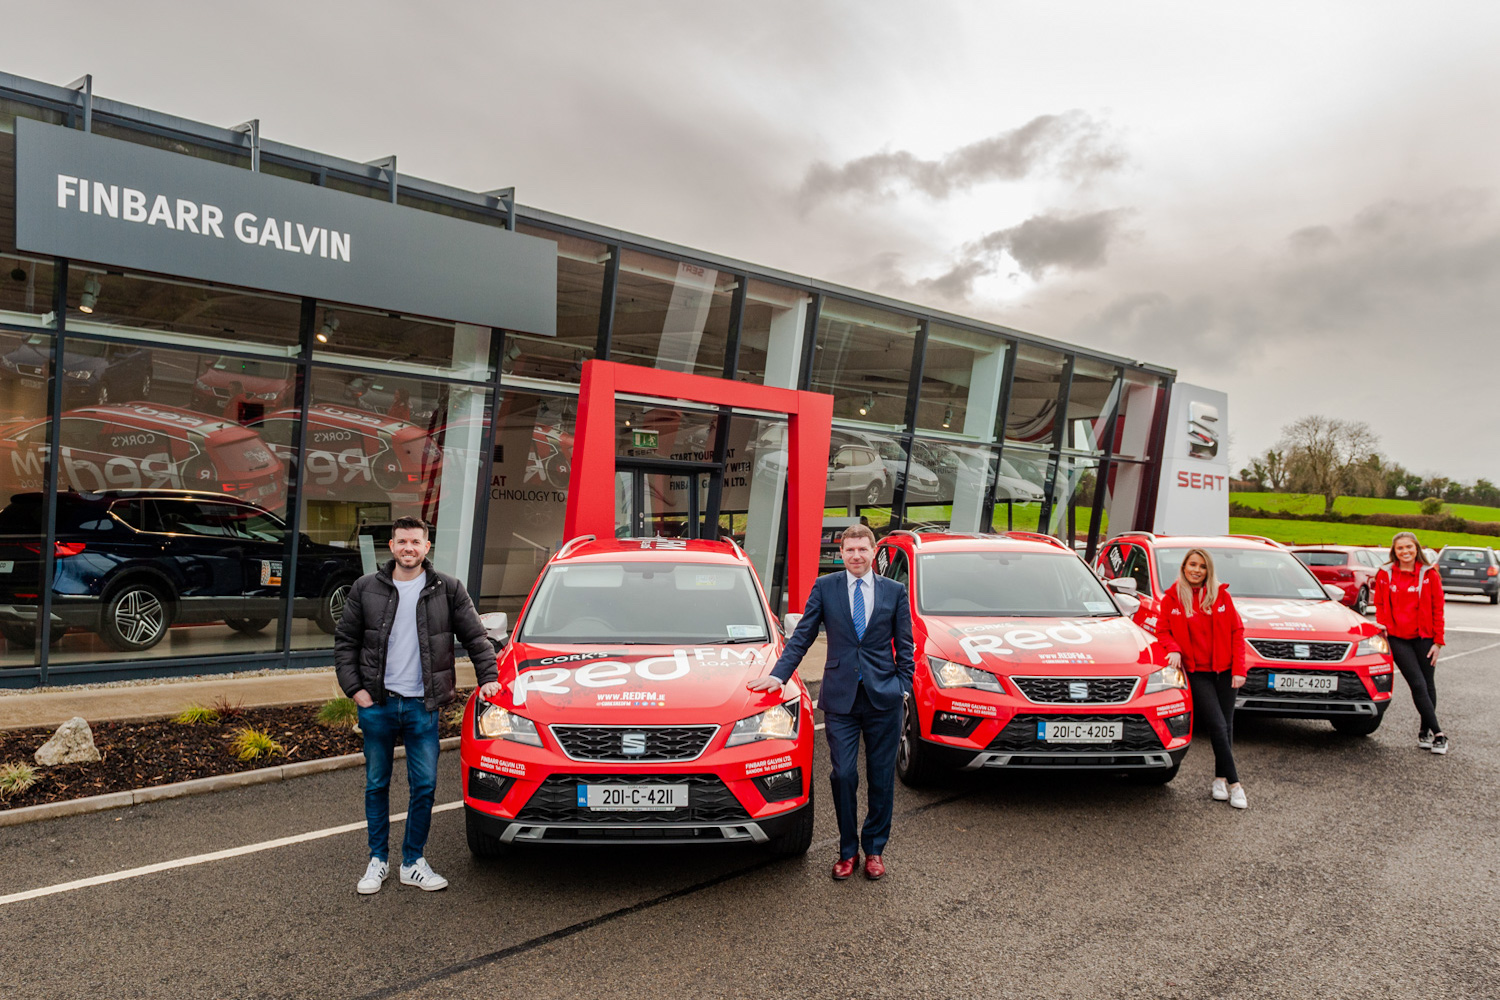 Car Industry News | SEAT names Finabarr Galvin Ltd as dealer of the year | CompleteCar.ie